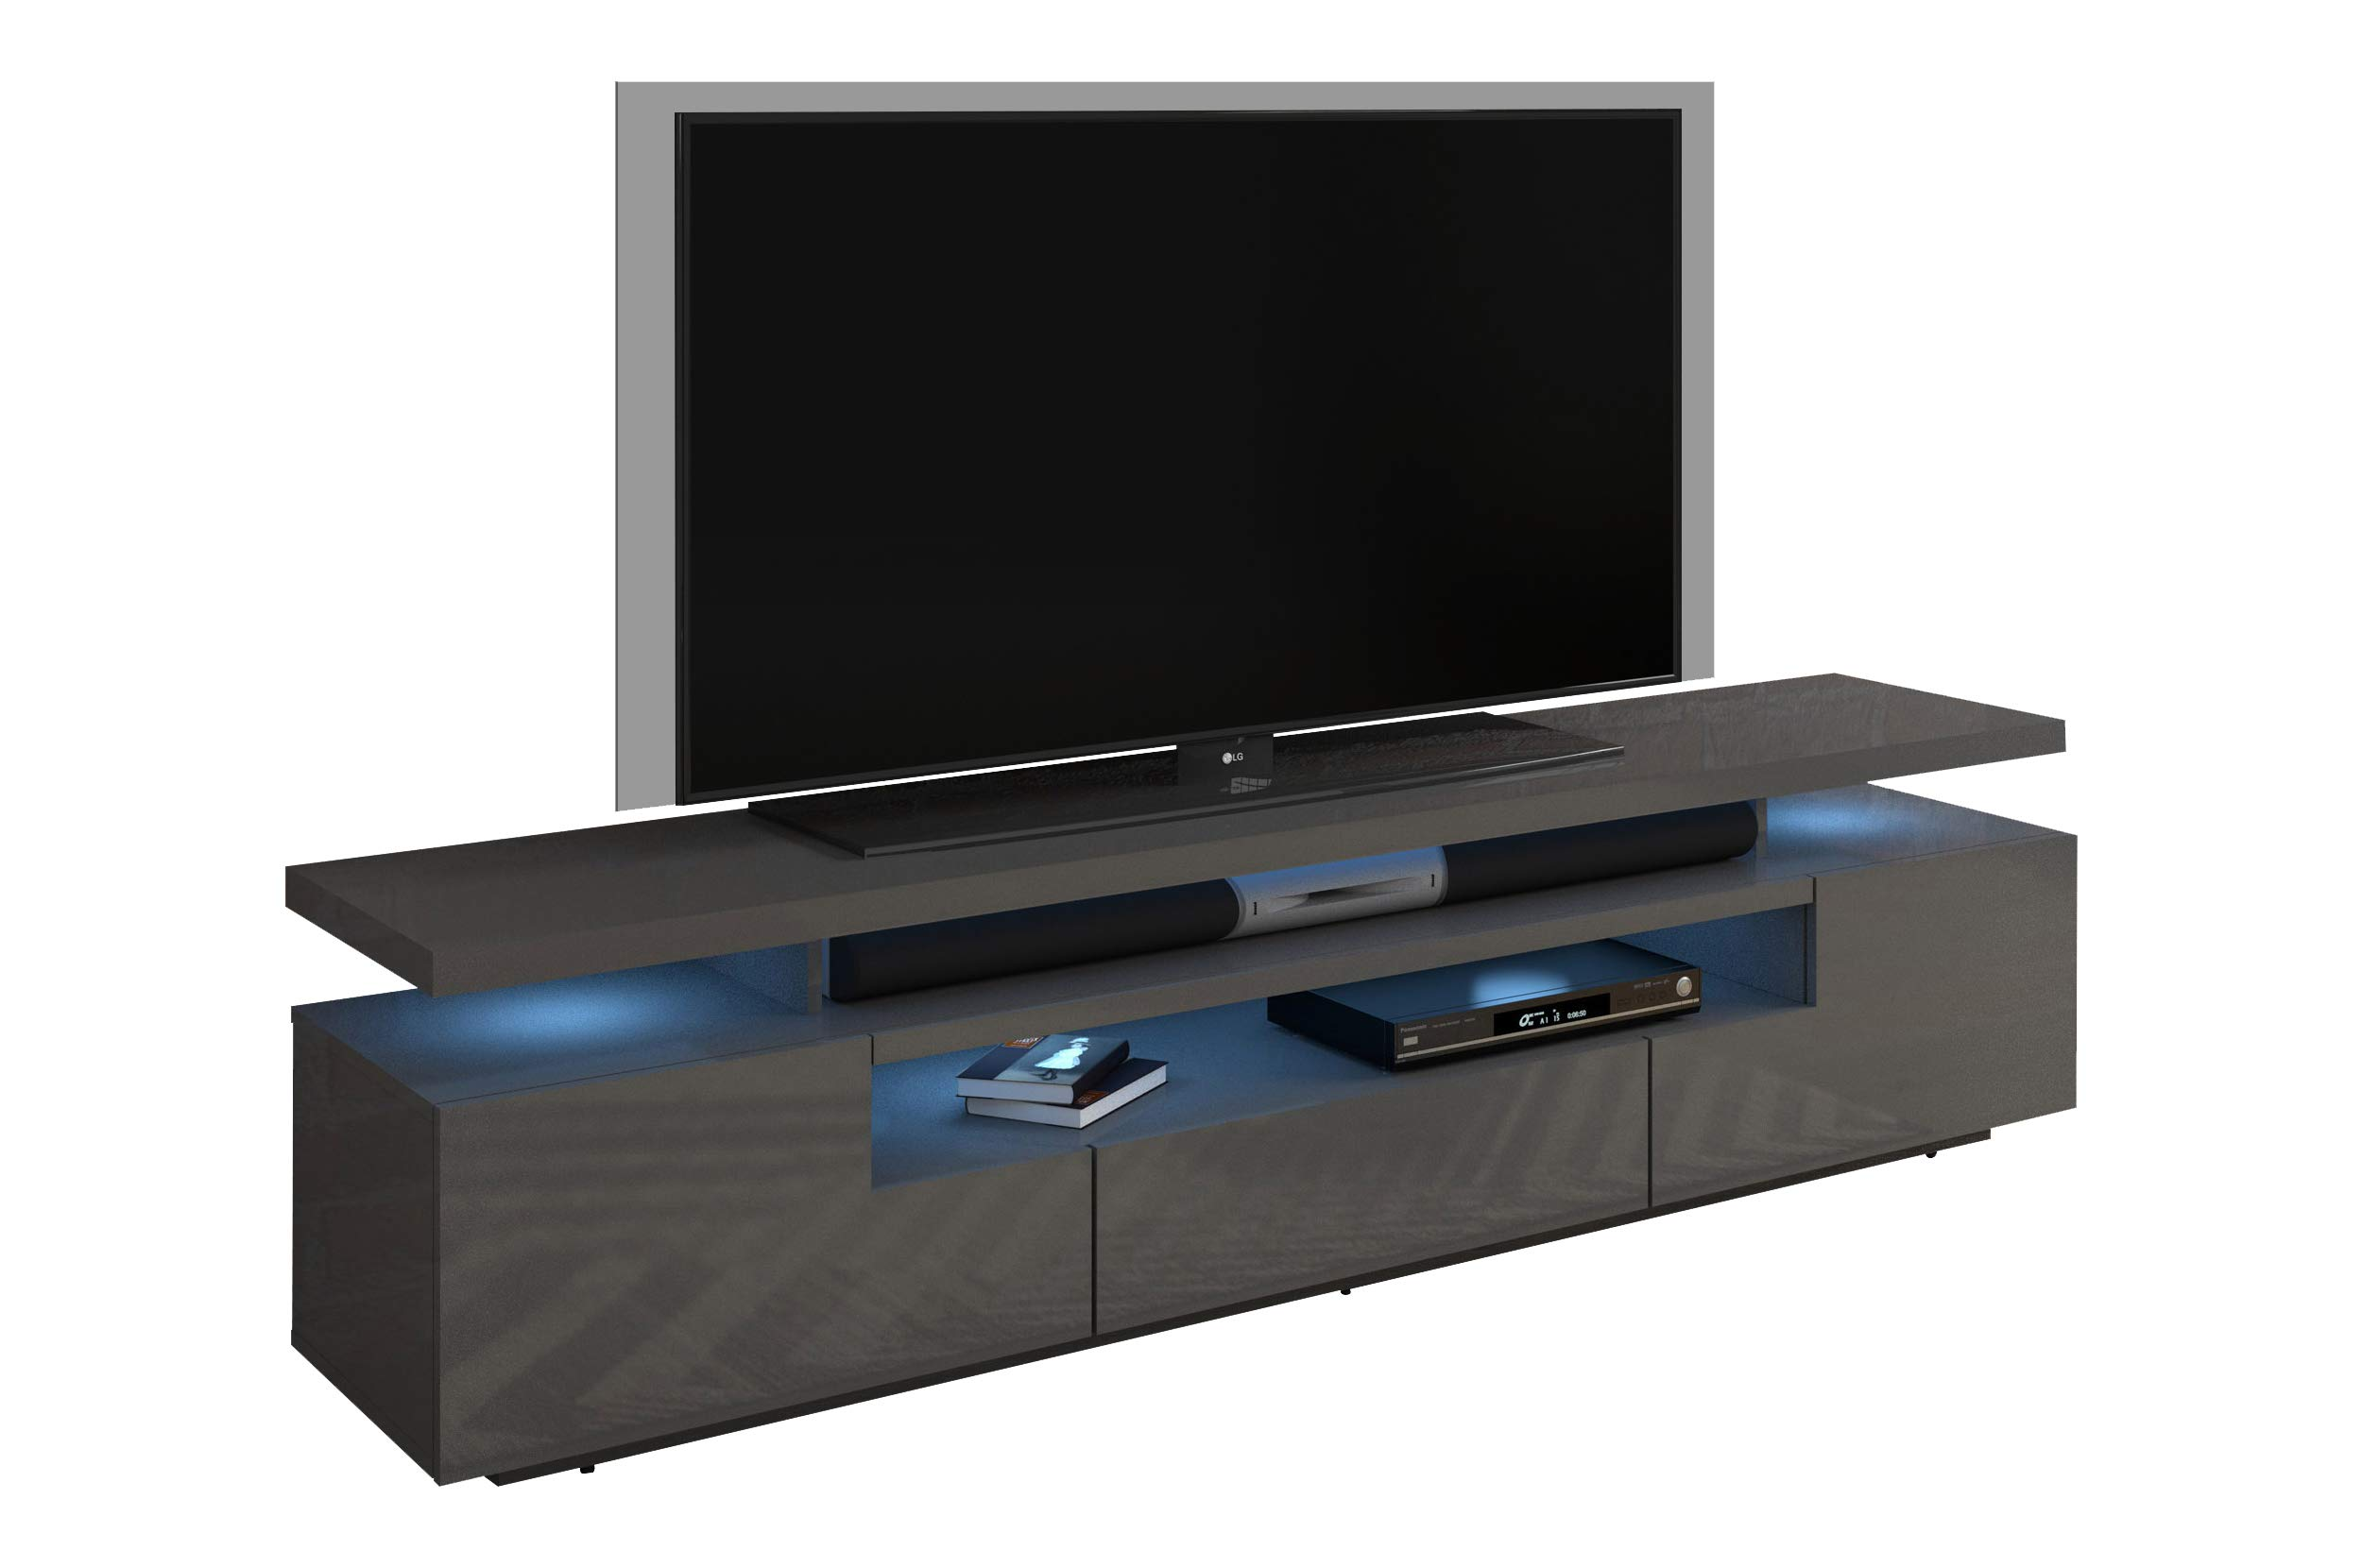 MEBLE FURNITURE & RUGS Eva 79'' Modern High Gloss TV Stand with 16 Color LEDs (Dark Gray) by MEBLE FURNITURE & RUGS